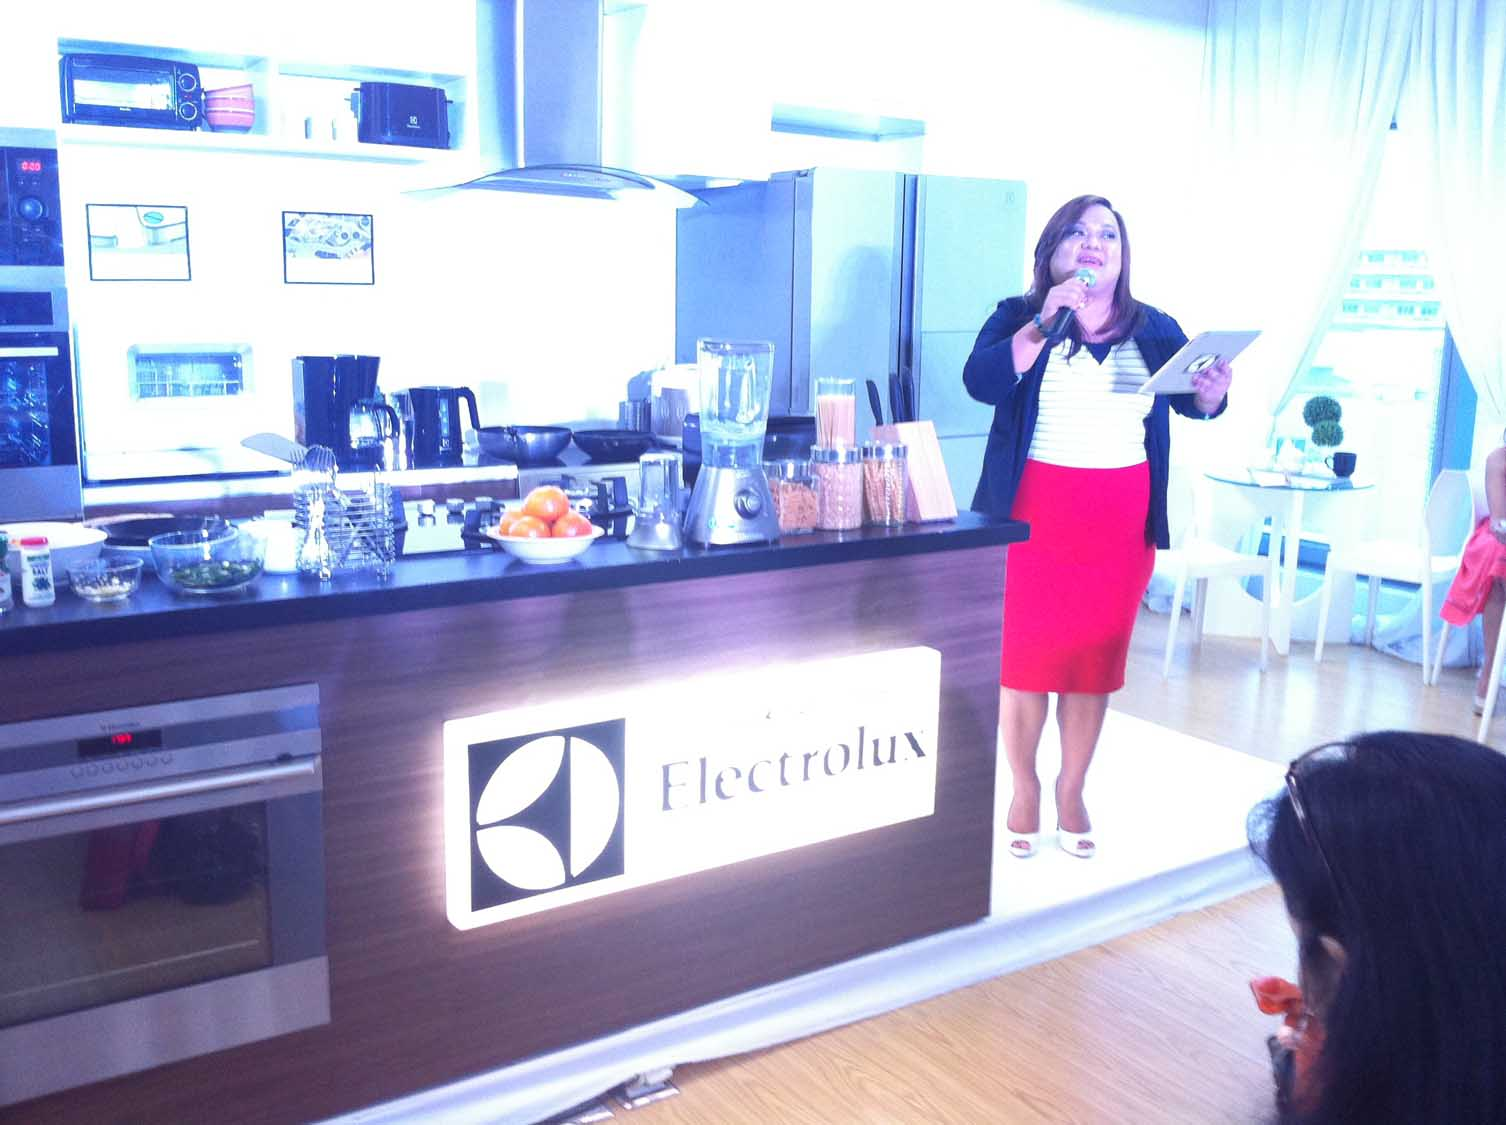 Electrolux kicks off Delightful-E Yummy at its new home